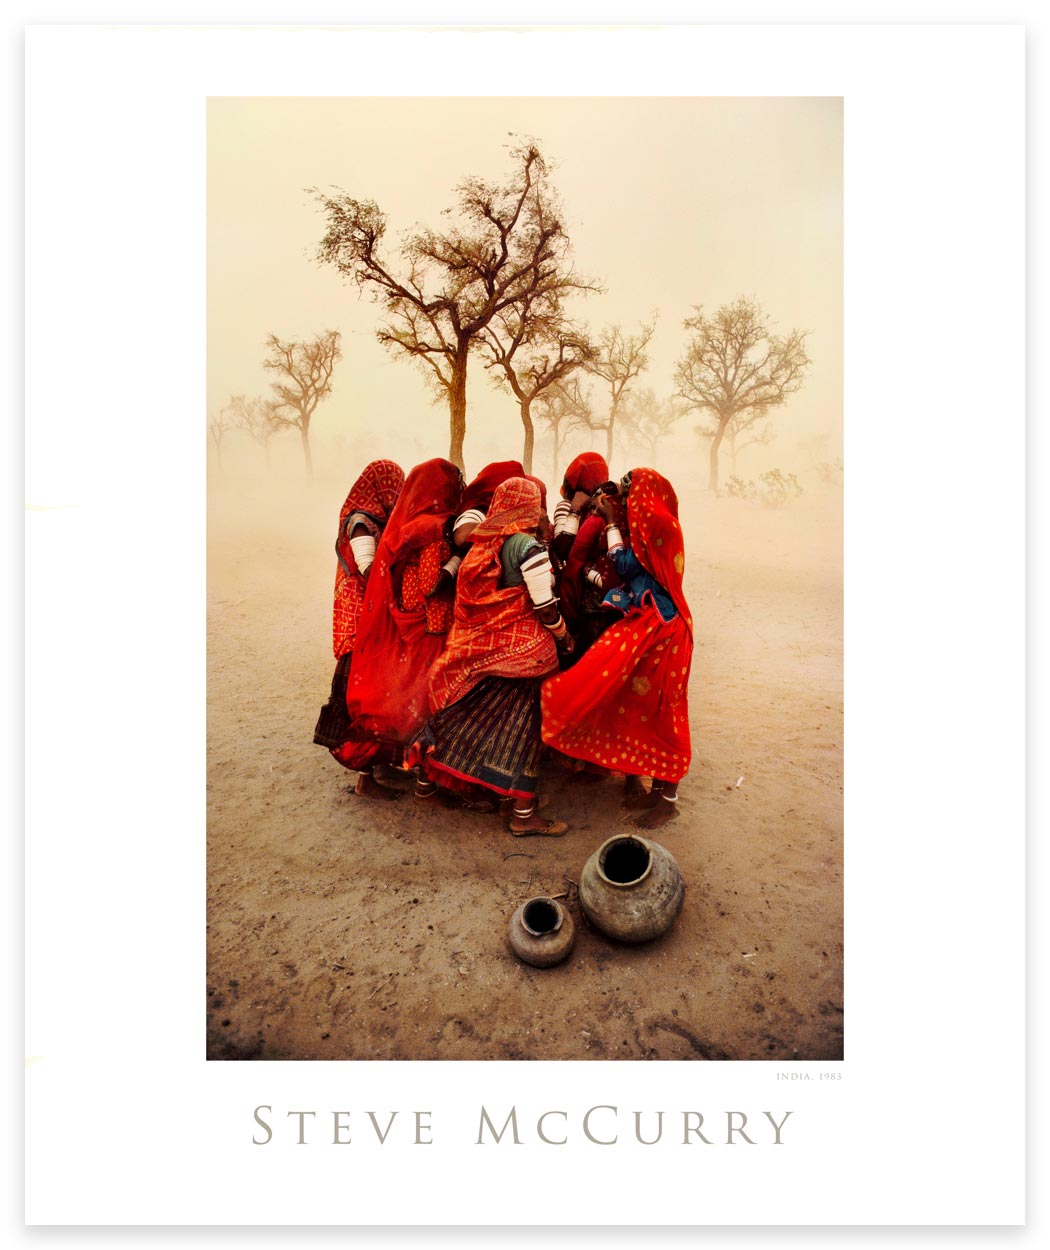 Poster: Dust Storm by Steve McCurry